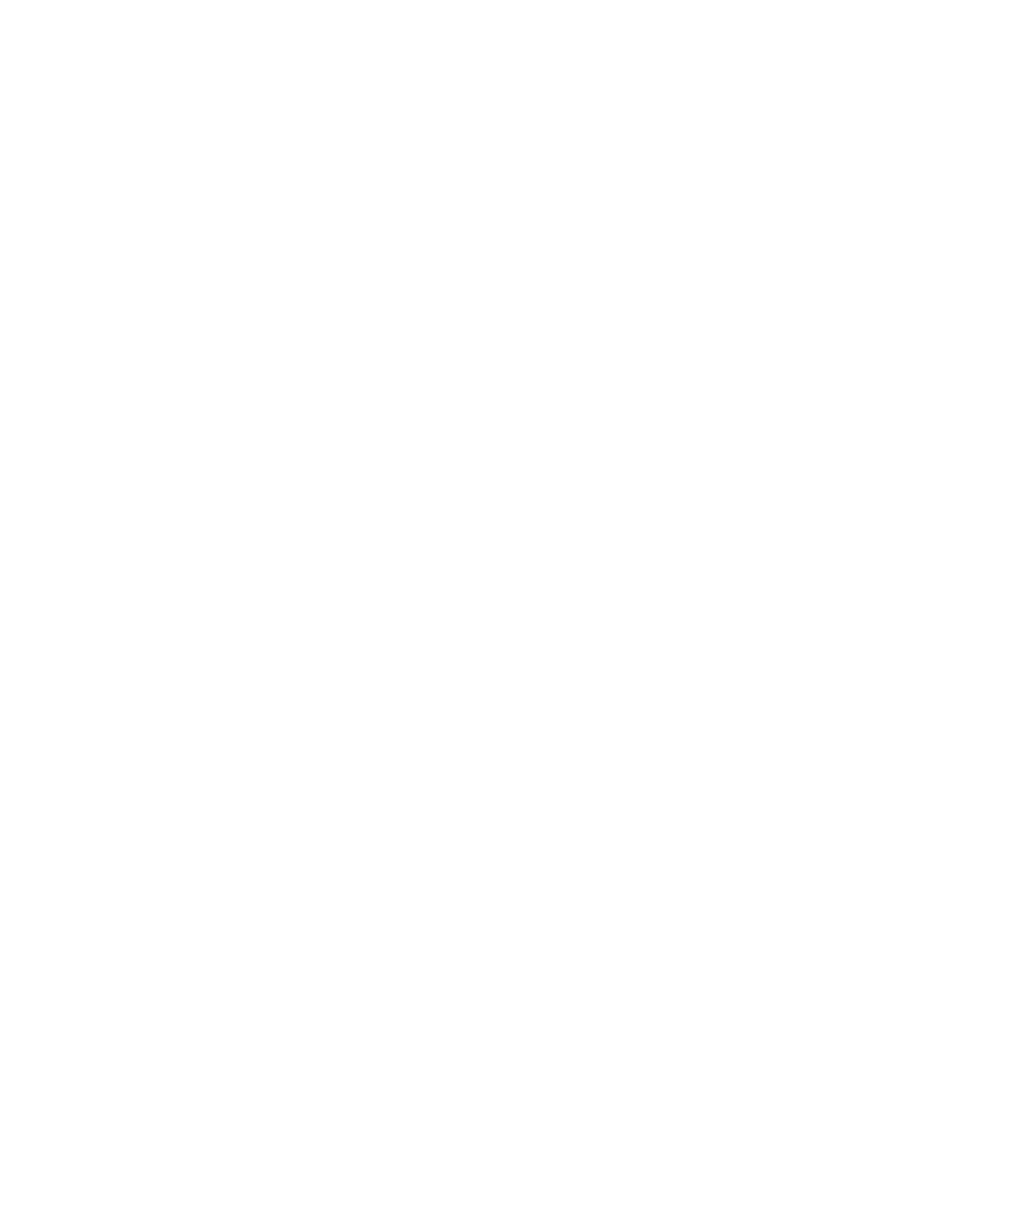 The logo for apple, one of teneighty's clients